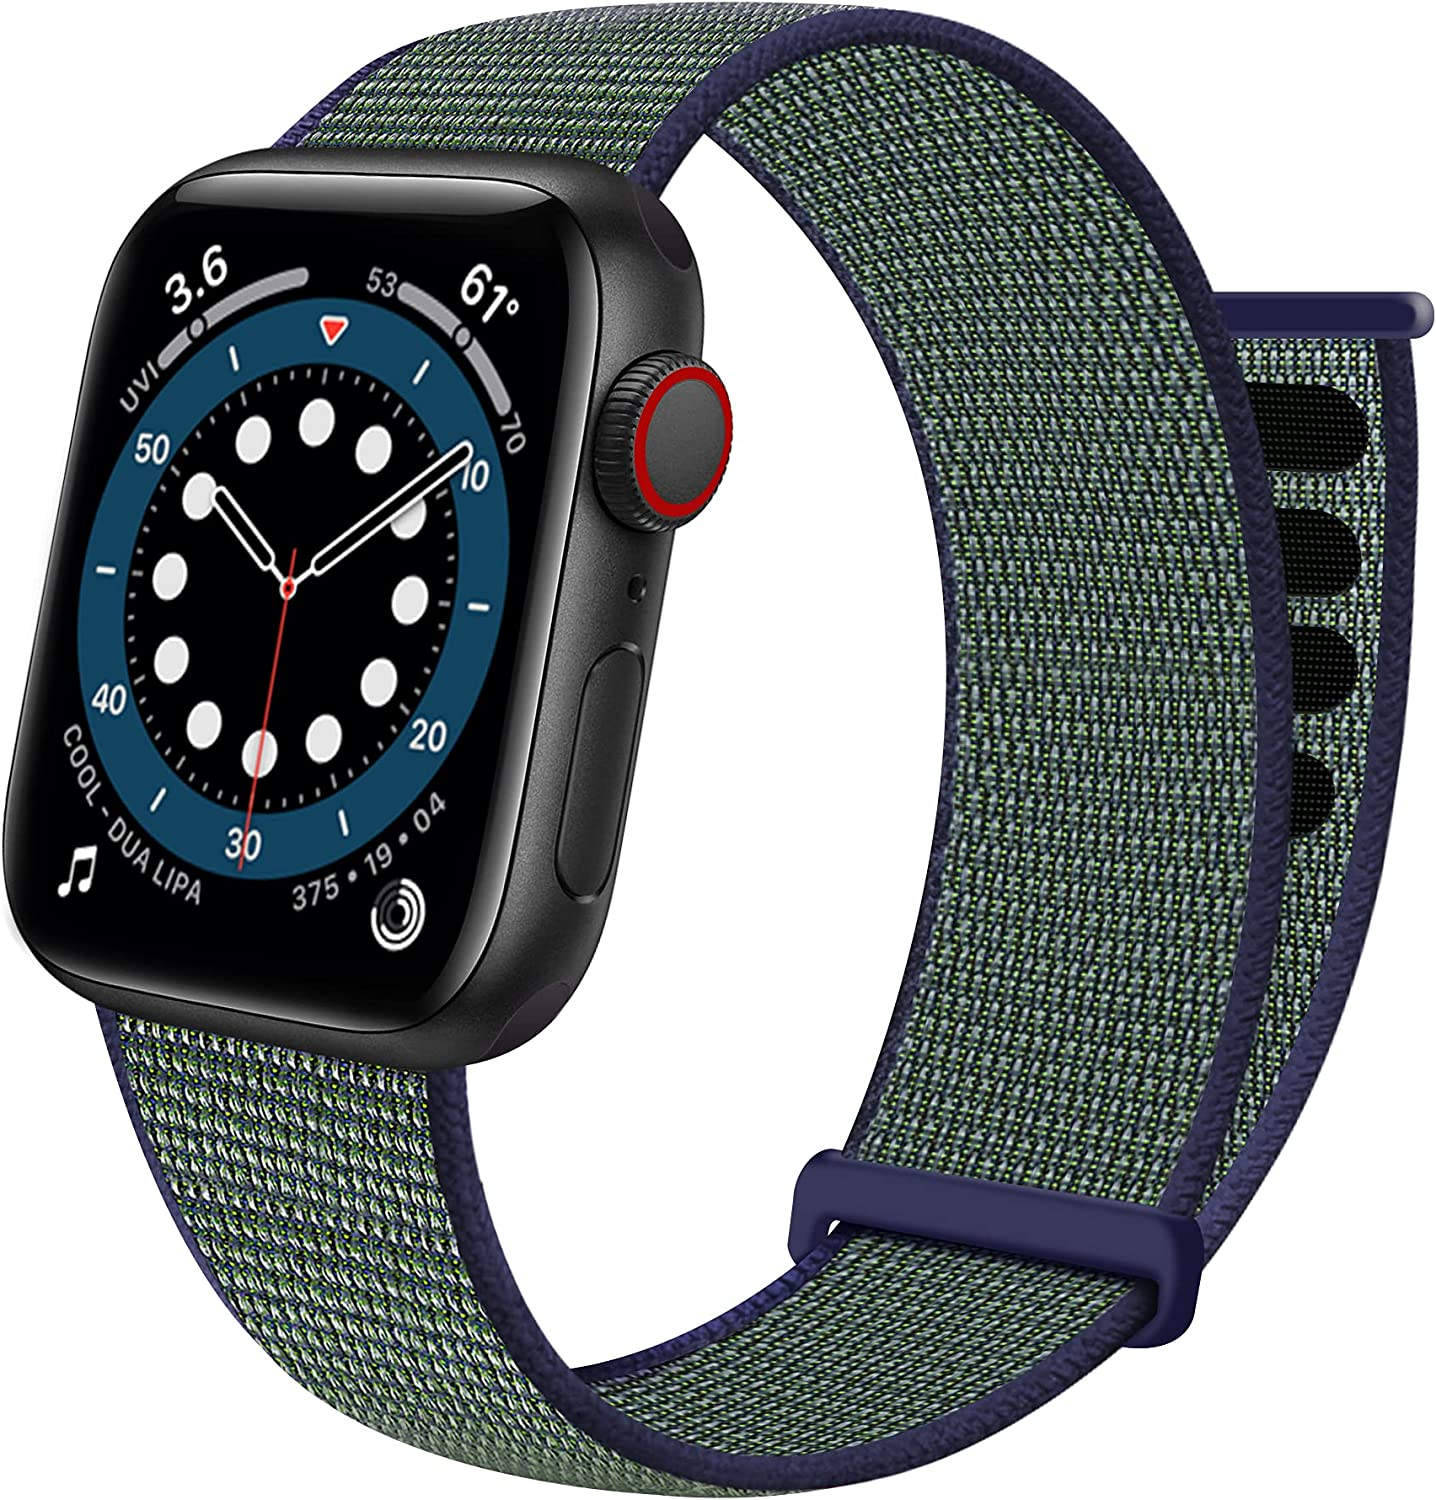 Sport Loop Band Compatible with Apple Watch Band 38mm 40mm 41mm 42mm 44mm 45mm iWatch Series 7 6 5 SE 4 3 2 1 Strap, Nylon Velcro Women Men Stretchy Elastic Braided Replacement Wristband Breathable